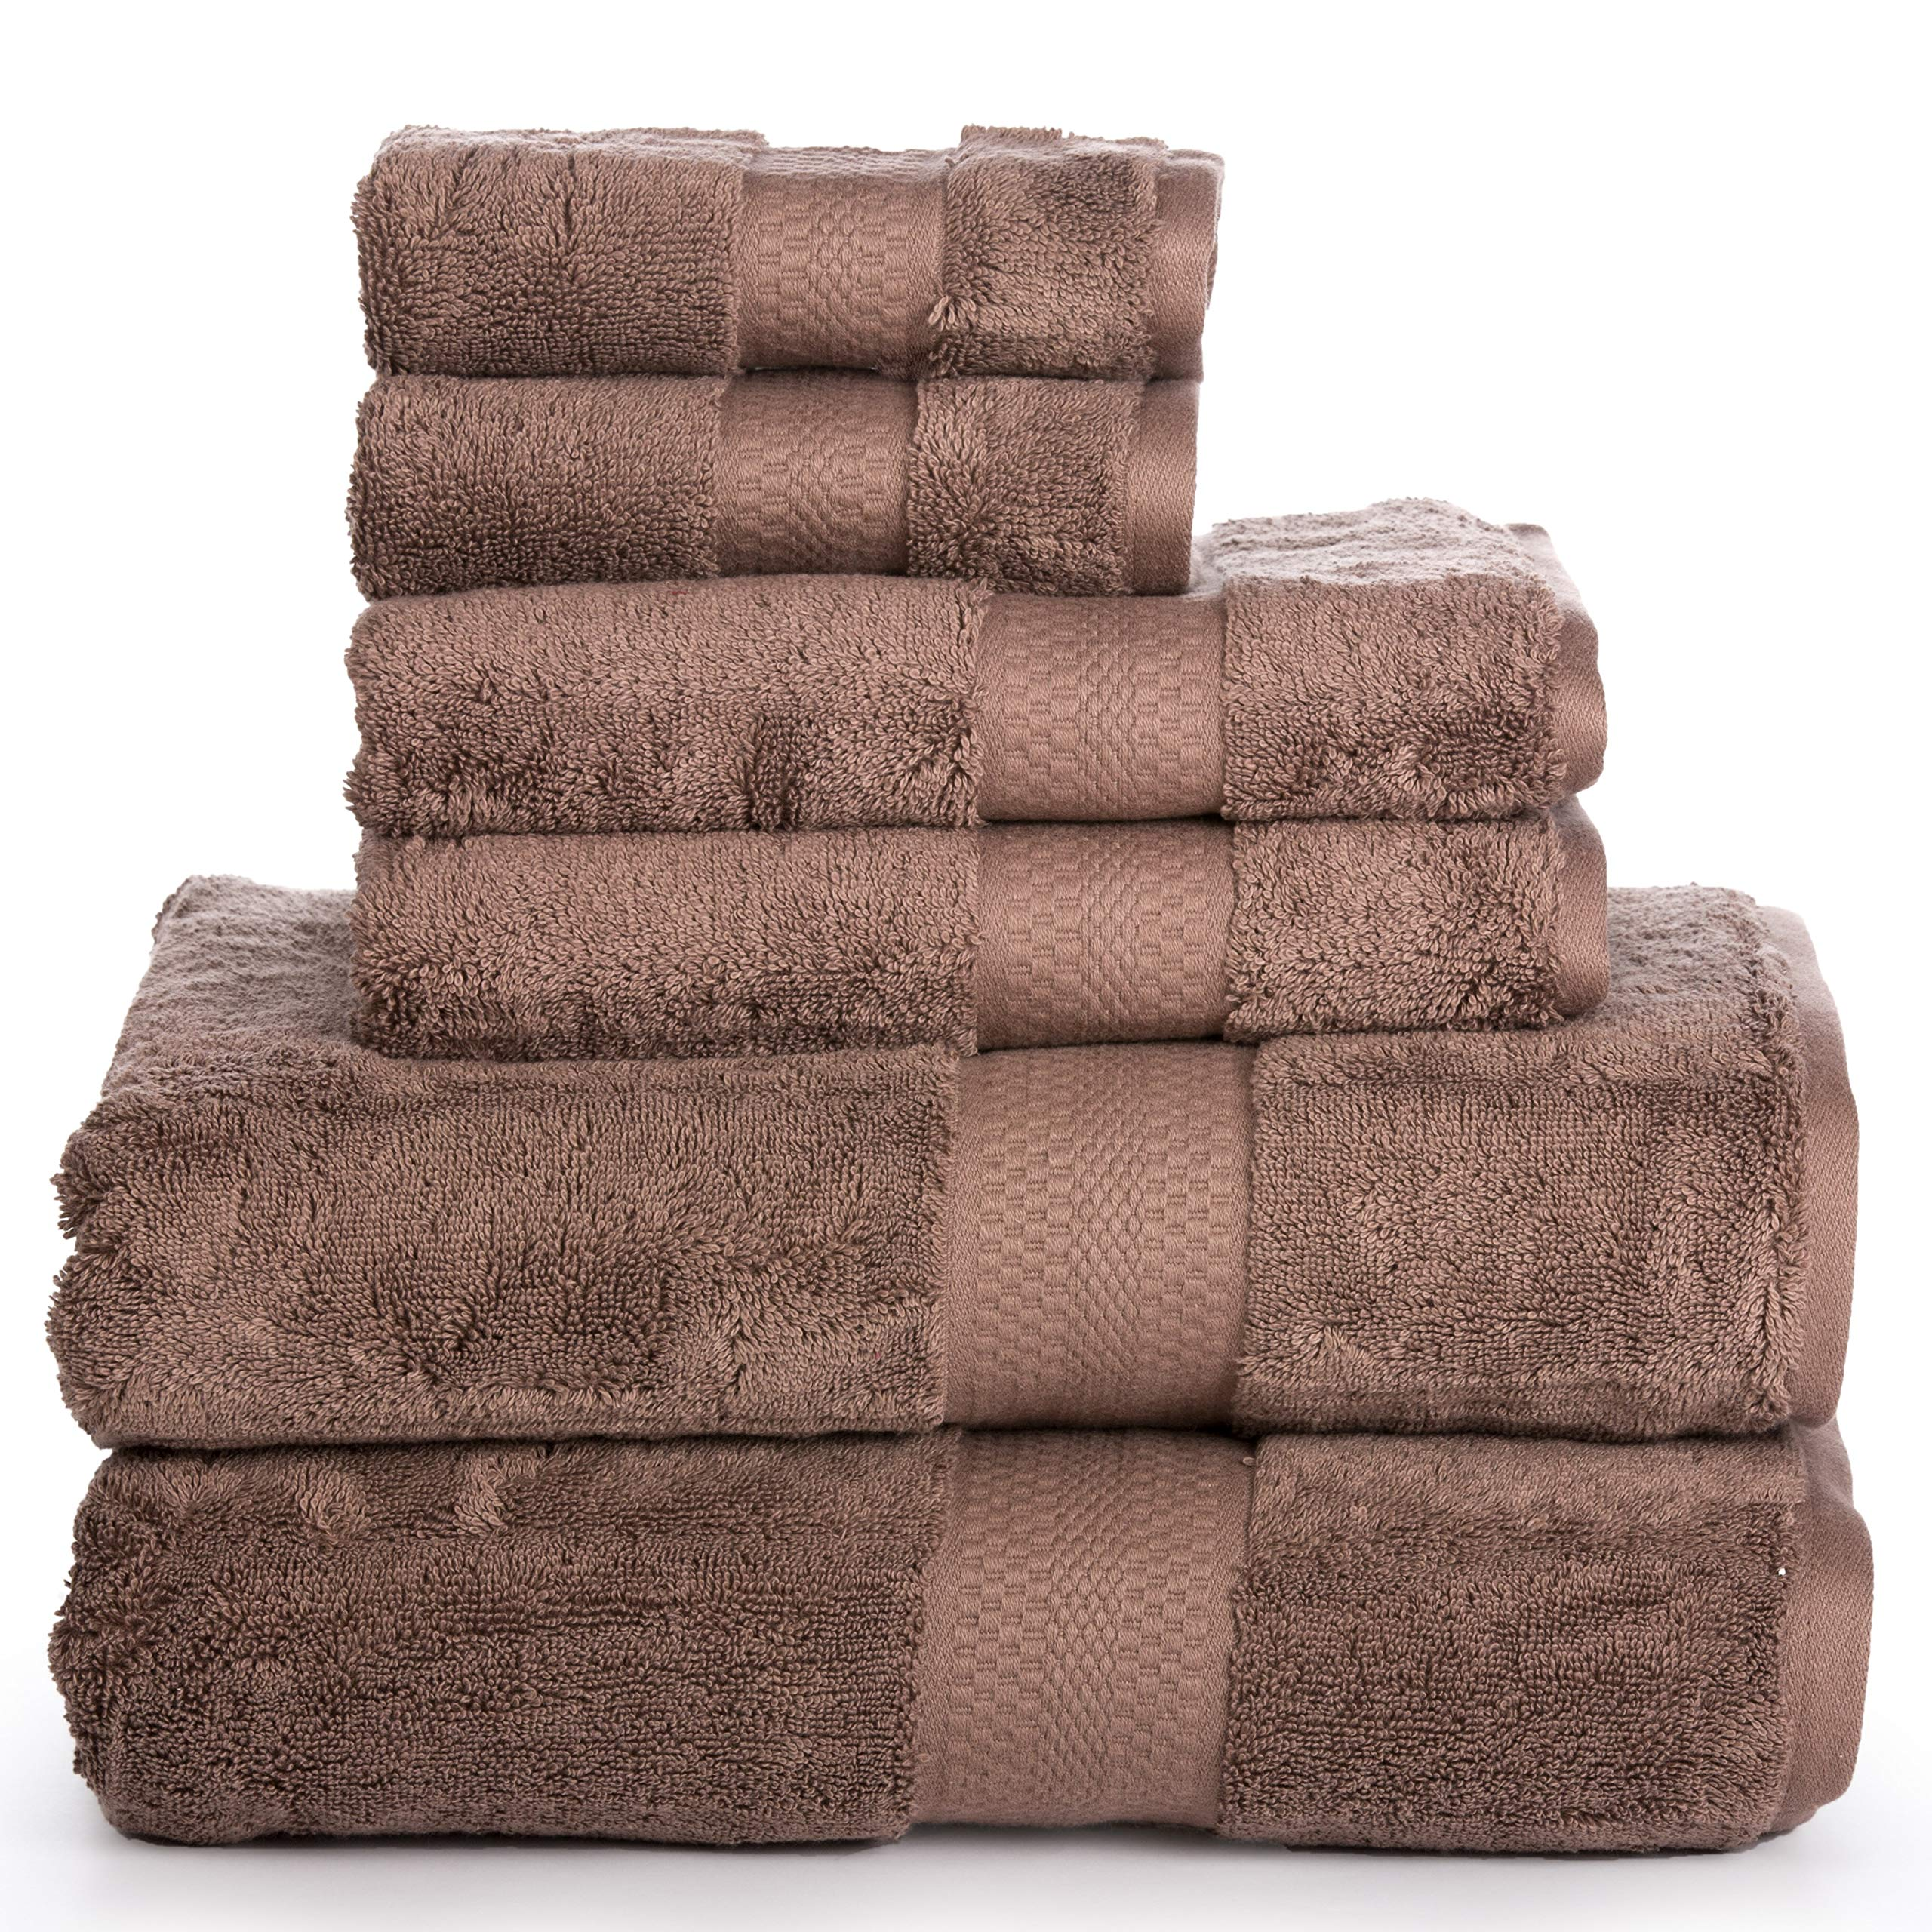 Luxury Cotton Bathroom Bath Towels: 6 Piece Towel Set for Household Bathrooms - Soft Plush and Absorbent Cotton with Double Stitch Hems - Bath / Shower Towels, Hand Towels, and Washcloths - BROWN